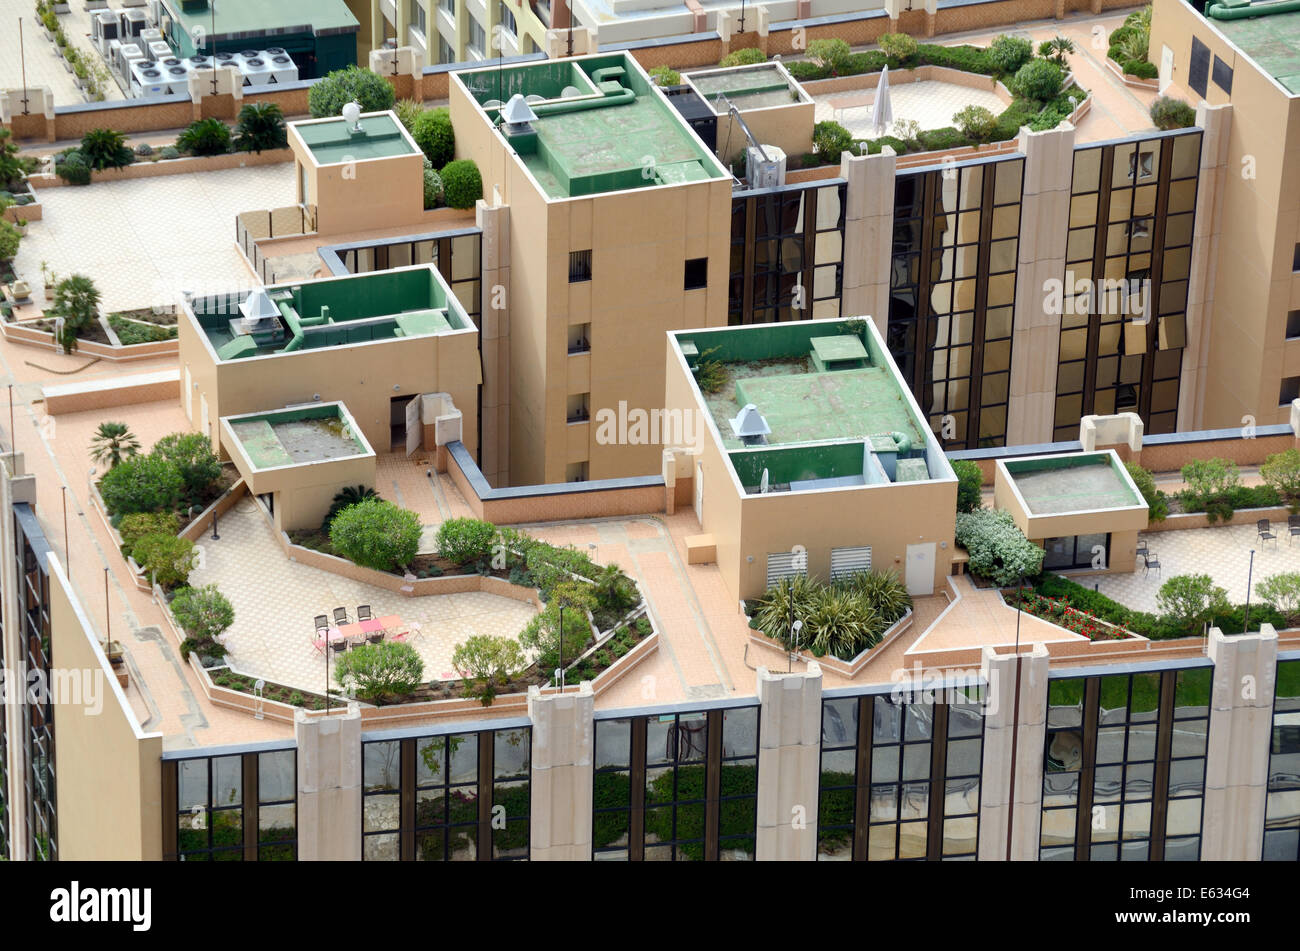 Fancy Apartment Building roof top gardens and roof terraces atop luxury apartment building